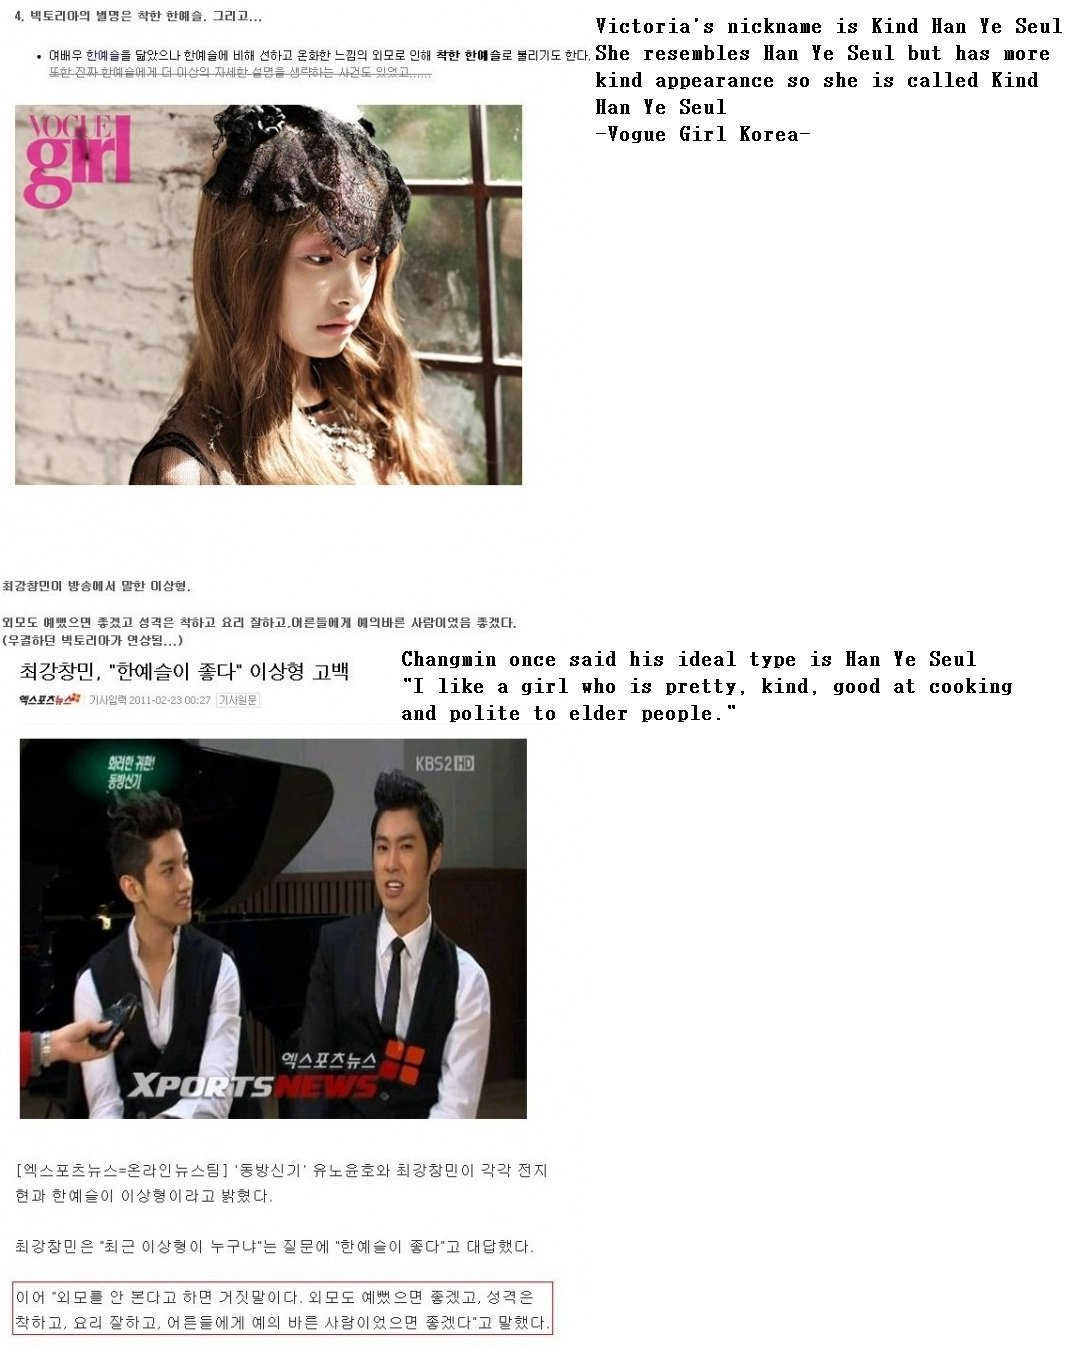 Changmin and victoria dating rumor